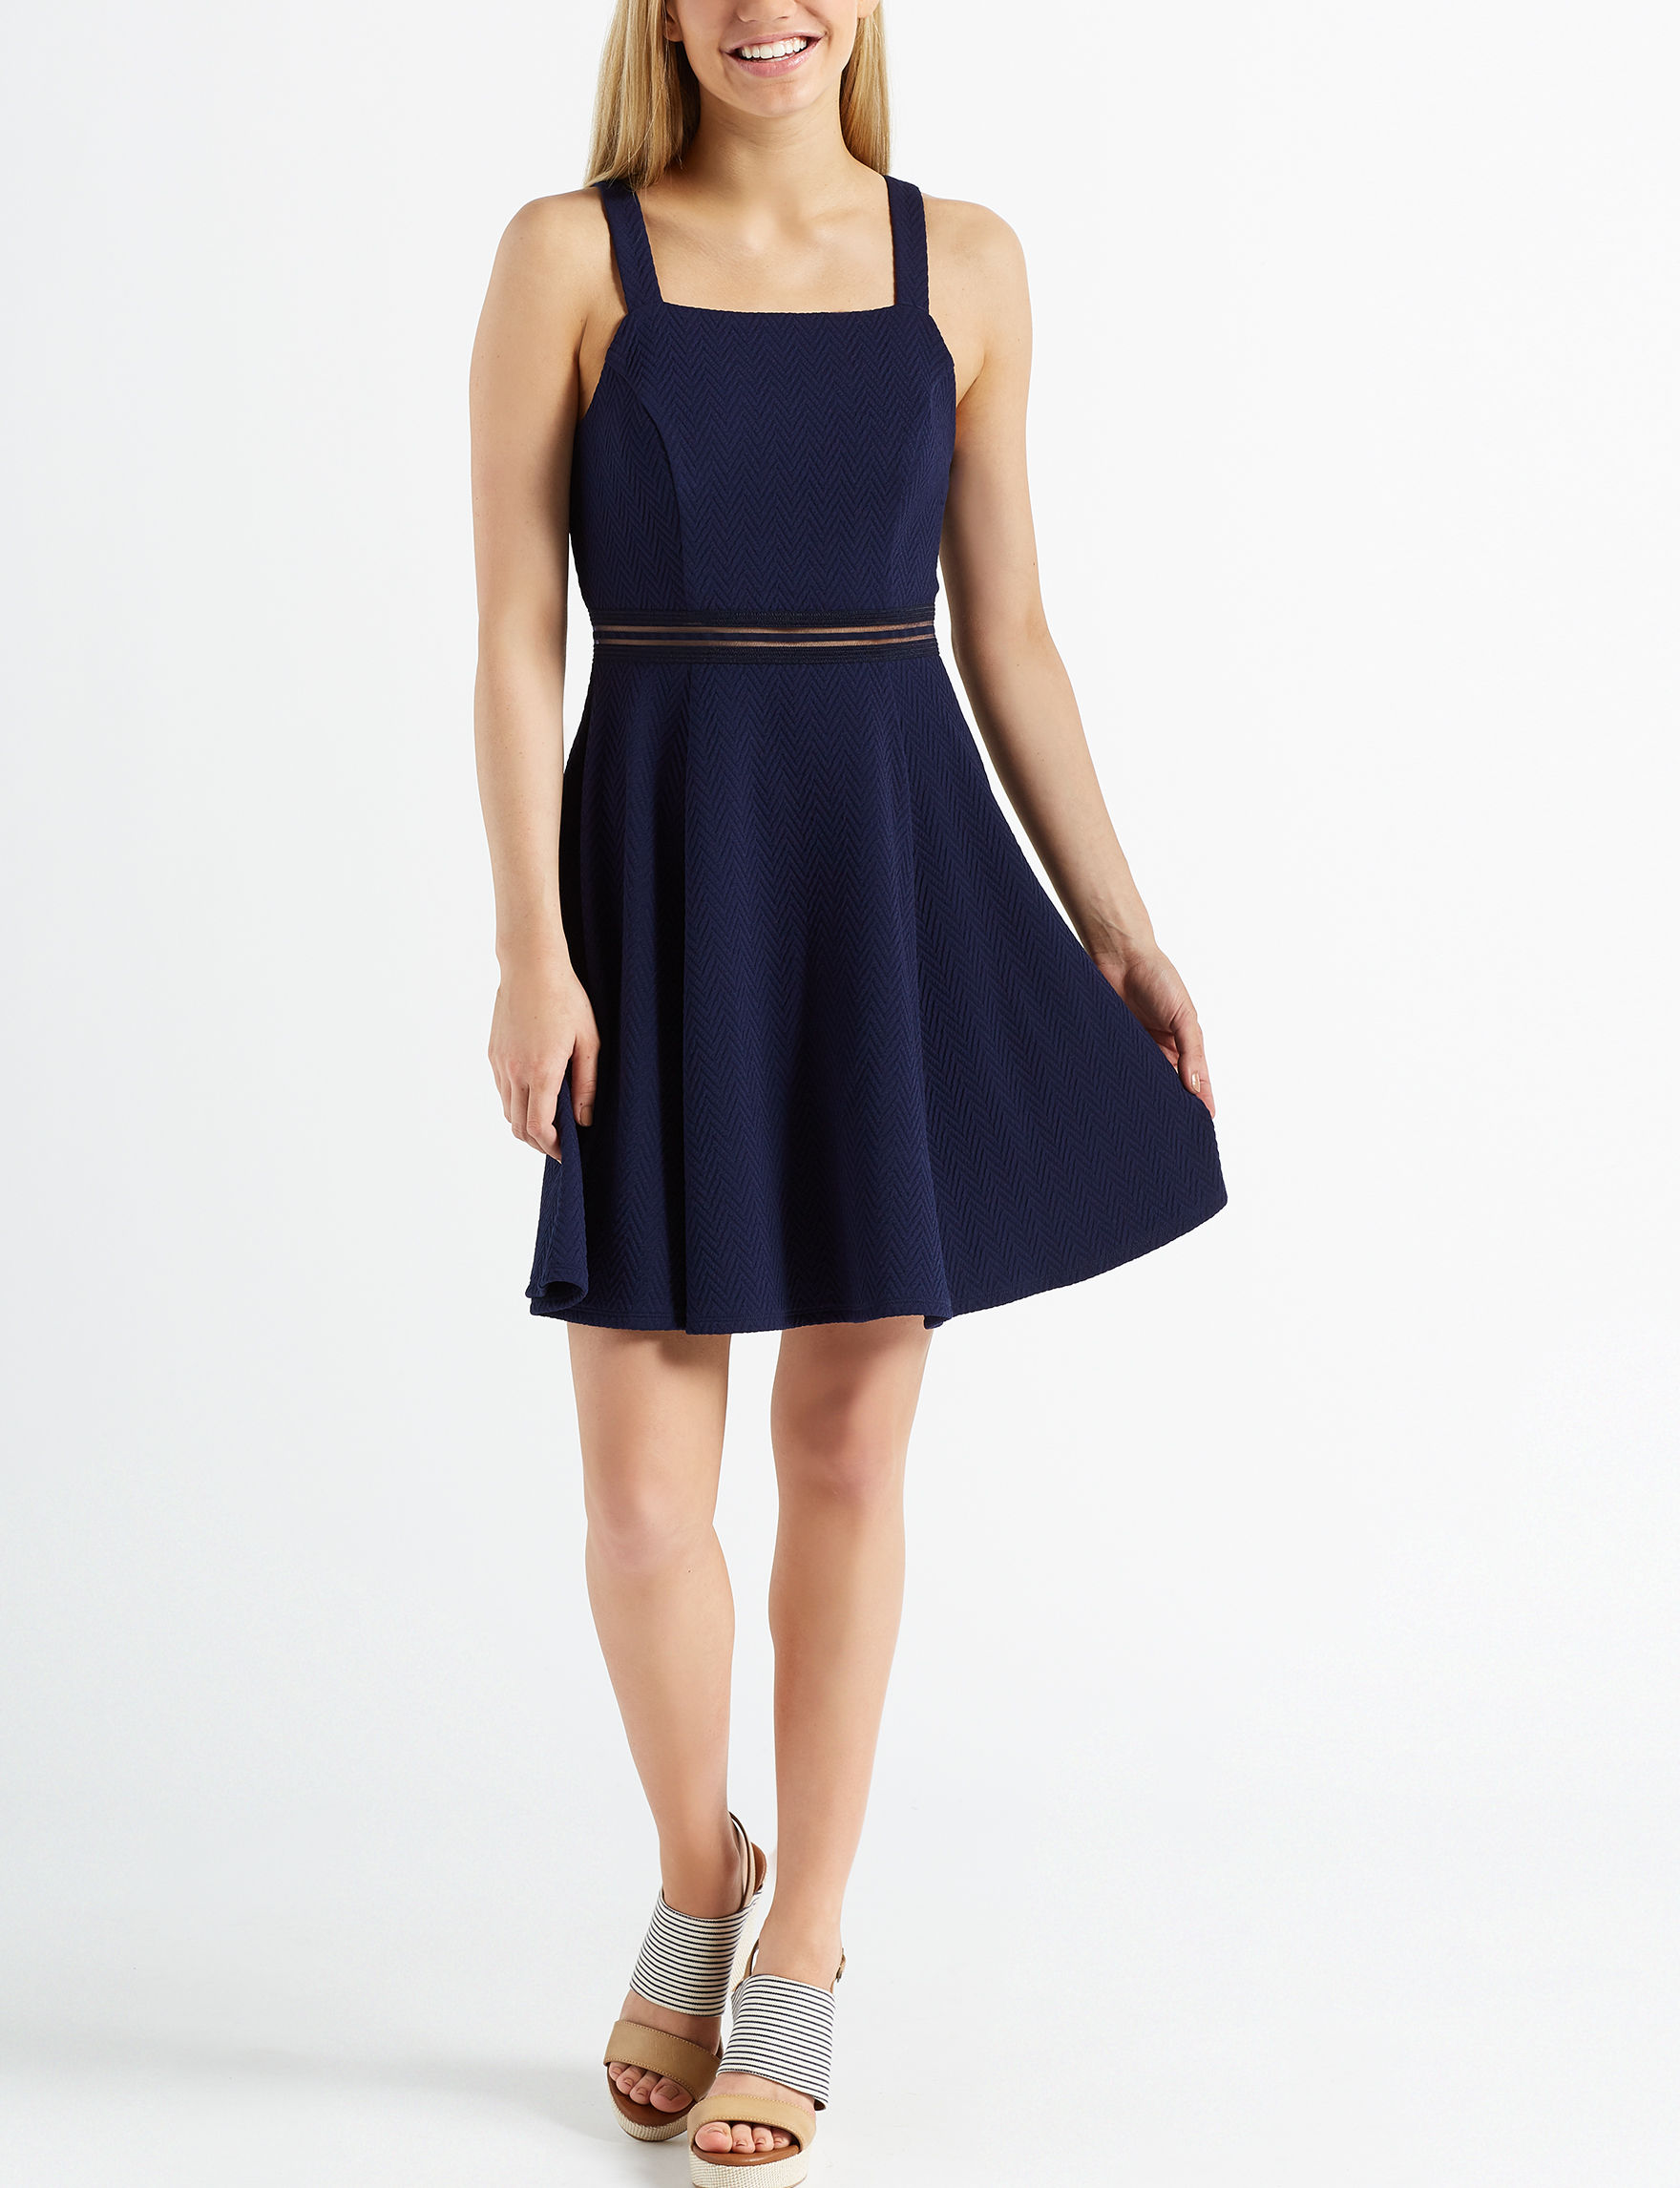 Sequin Hearts Navy Everyday & Casual Fit & Flare Dresses